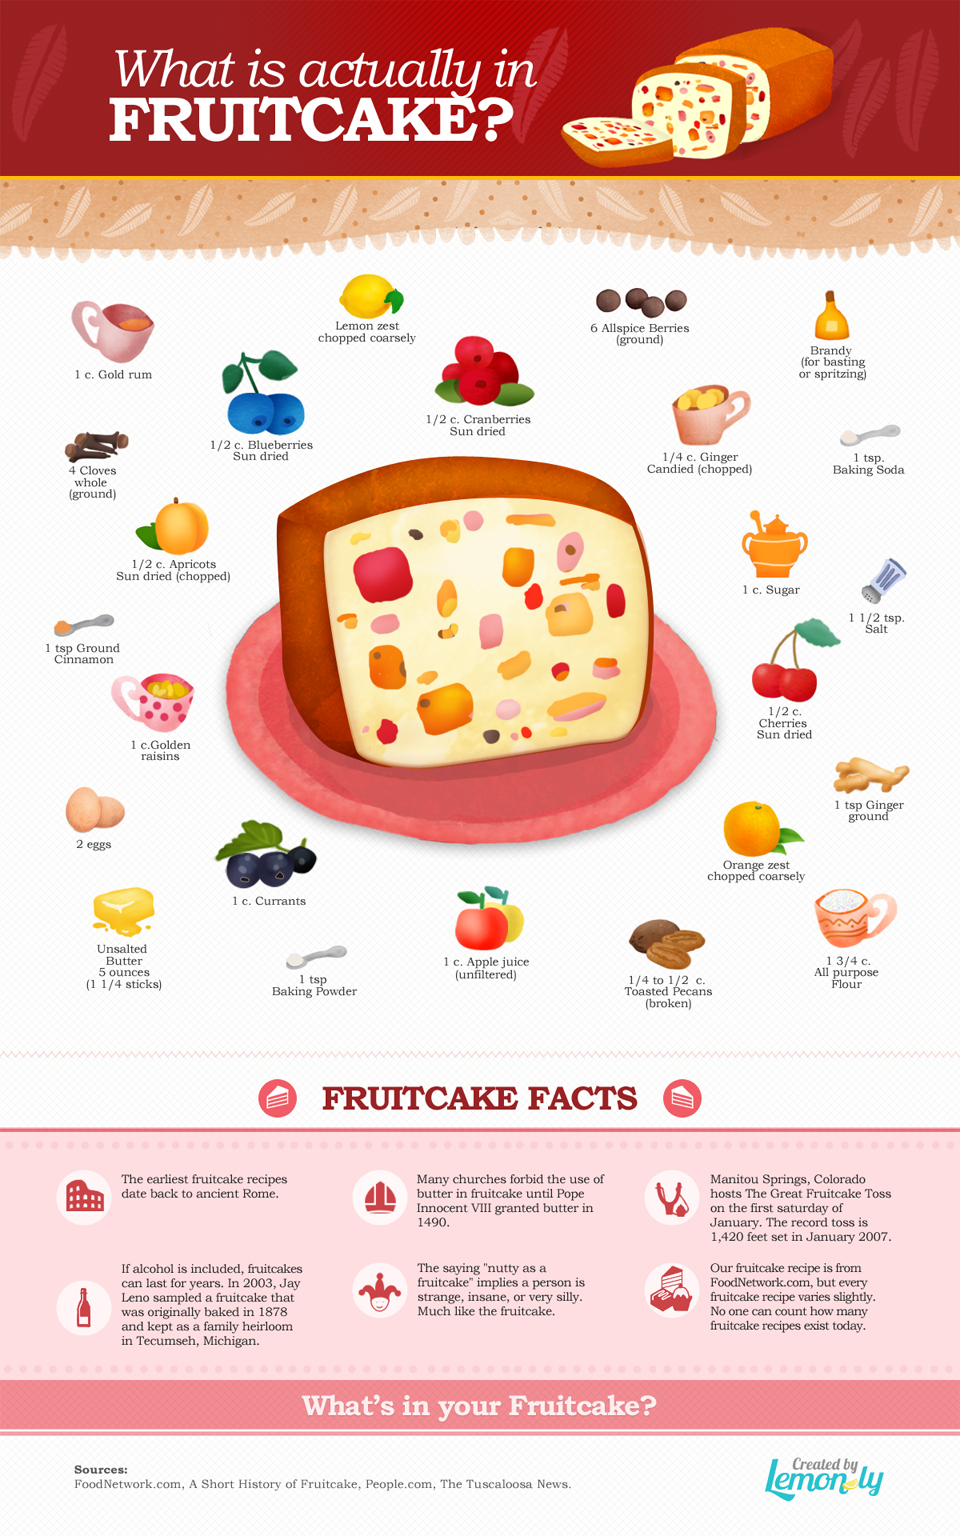 What Is Actually In Fruitcake?